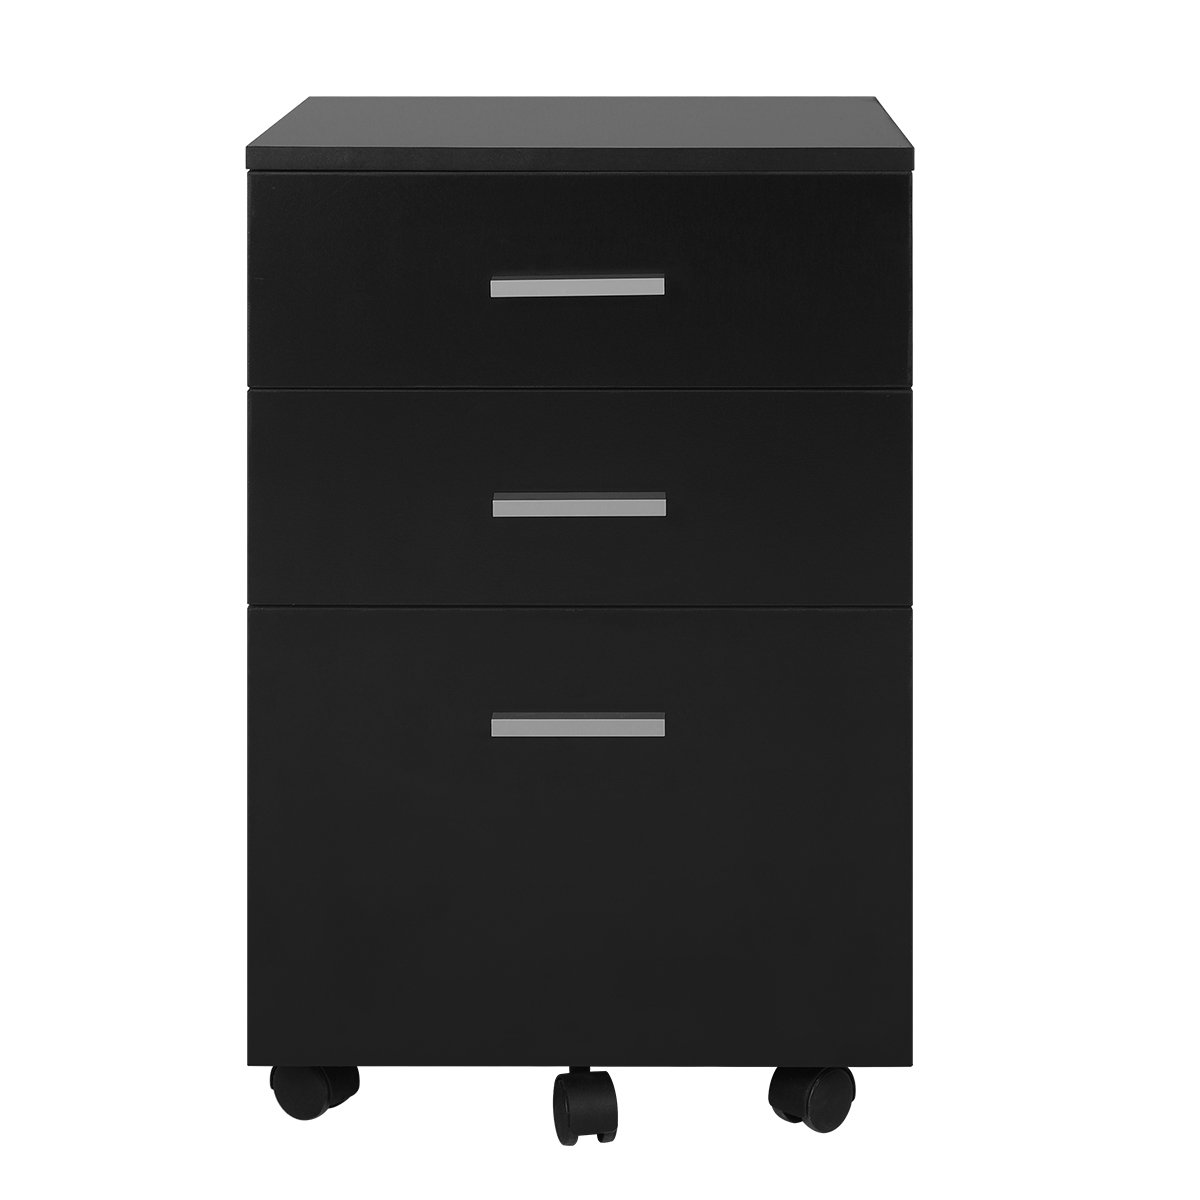 DEVAISE 3 Drawer Lateral Wood Mobile Filing Cabinet, Letter Size/A4, Black CZBOAO